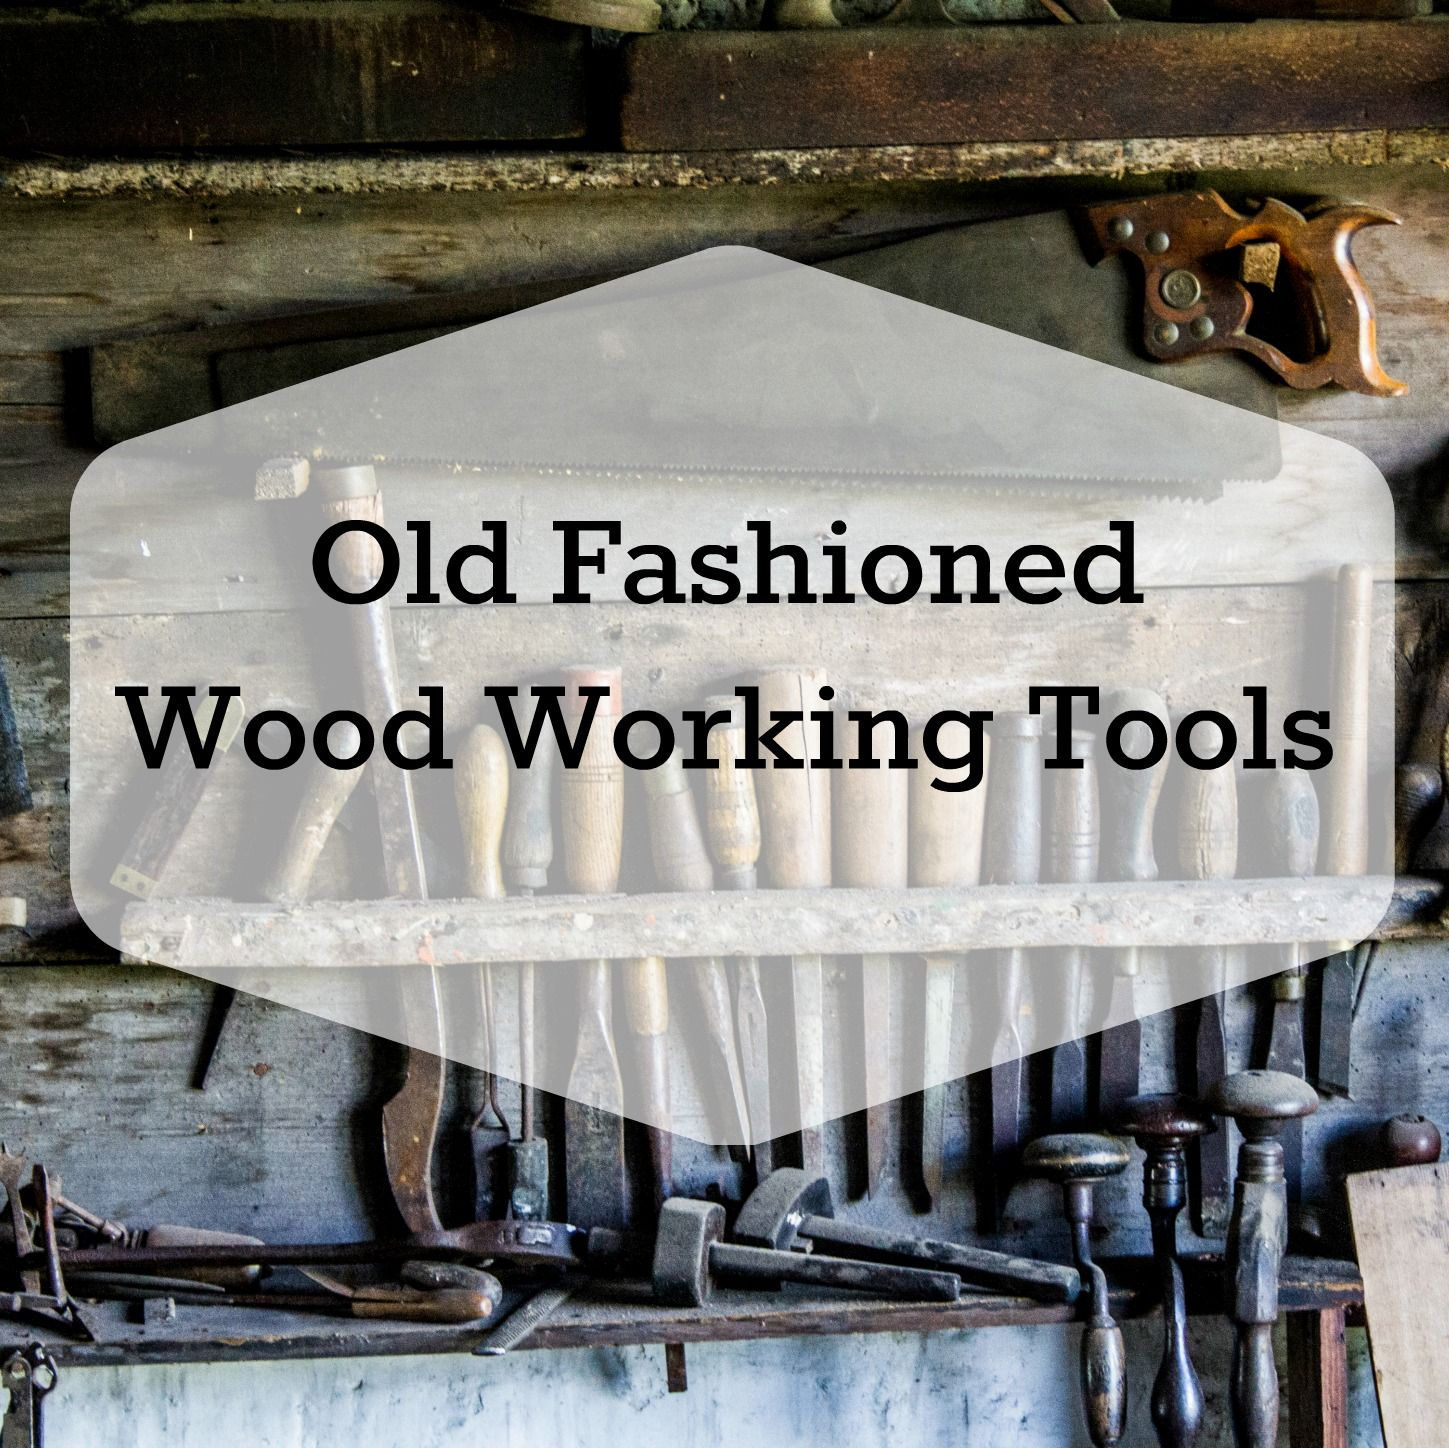 Old Fashioned Wood Working Tools